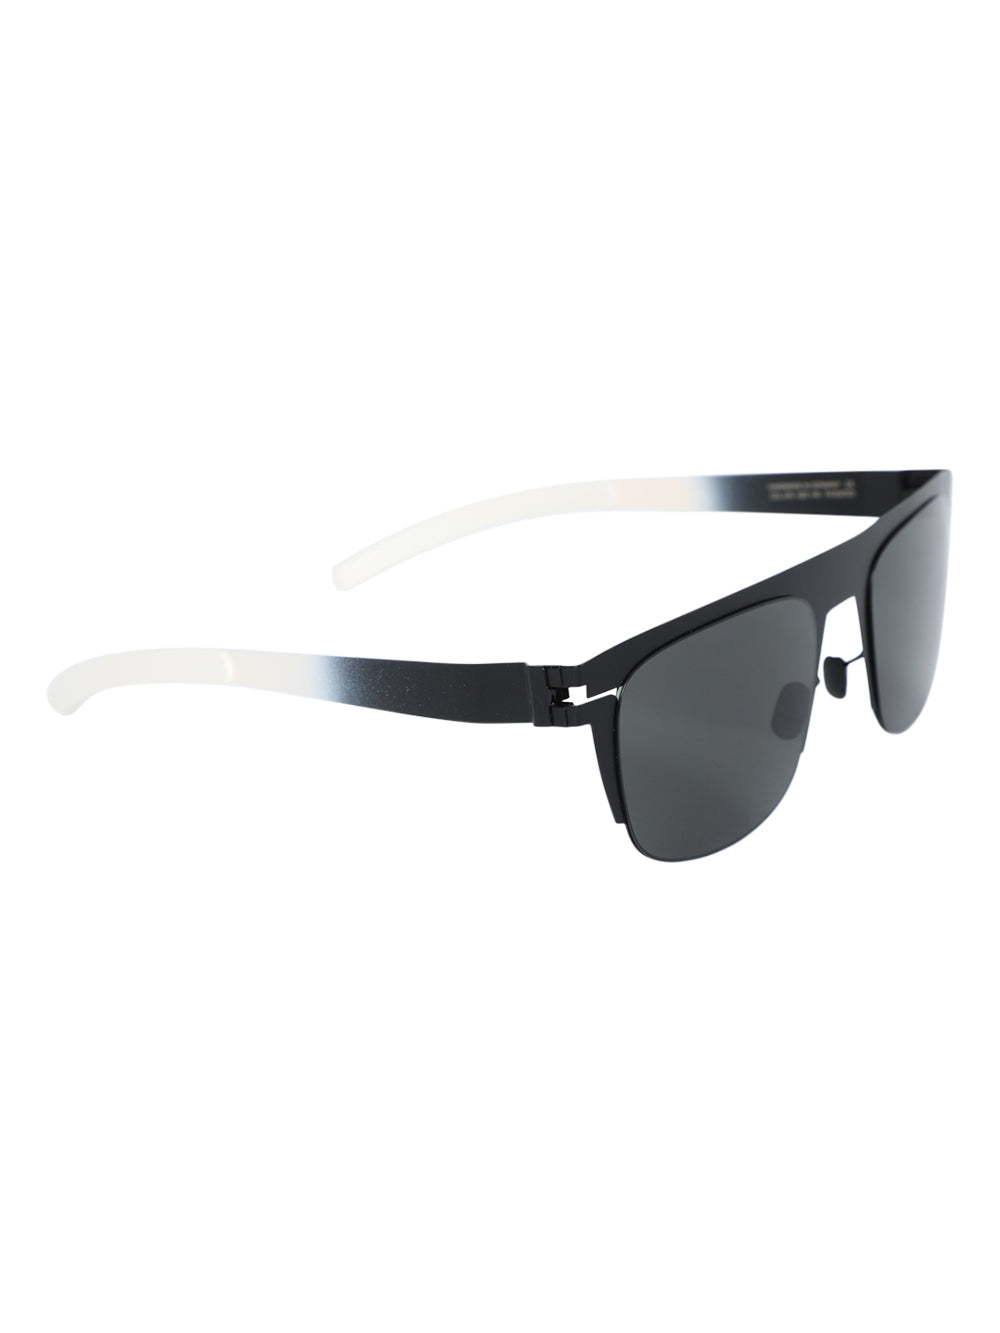 Black & White Bernhard Willhelm Degrade Sunglasses